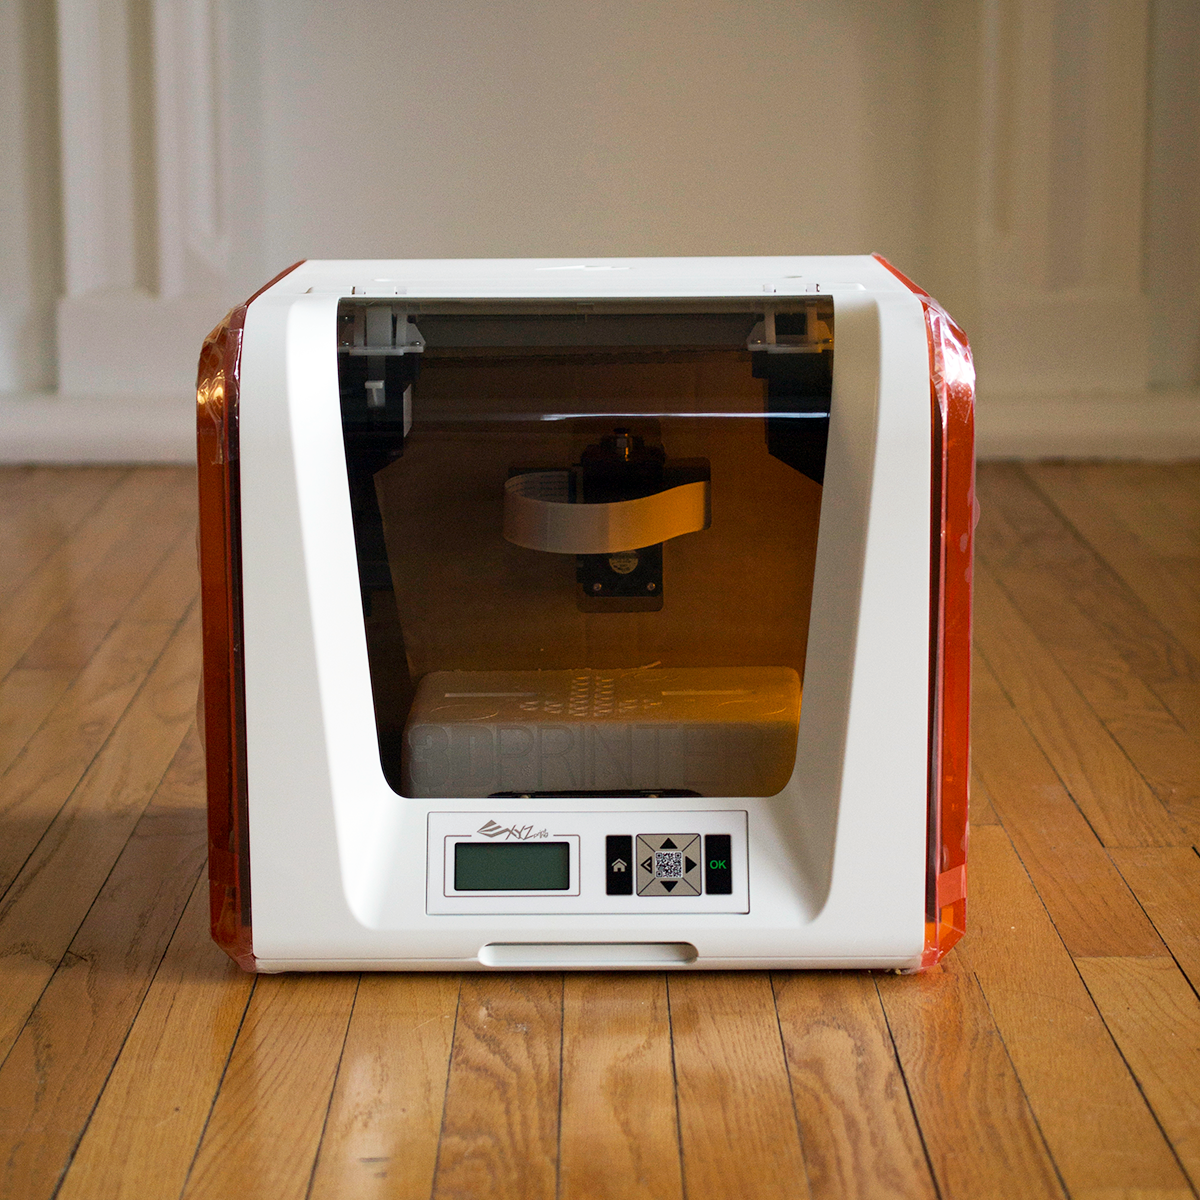 da vinci jr 3D printer review from xyzprinting